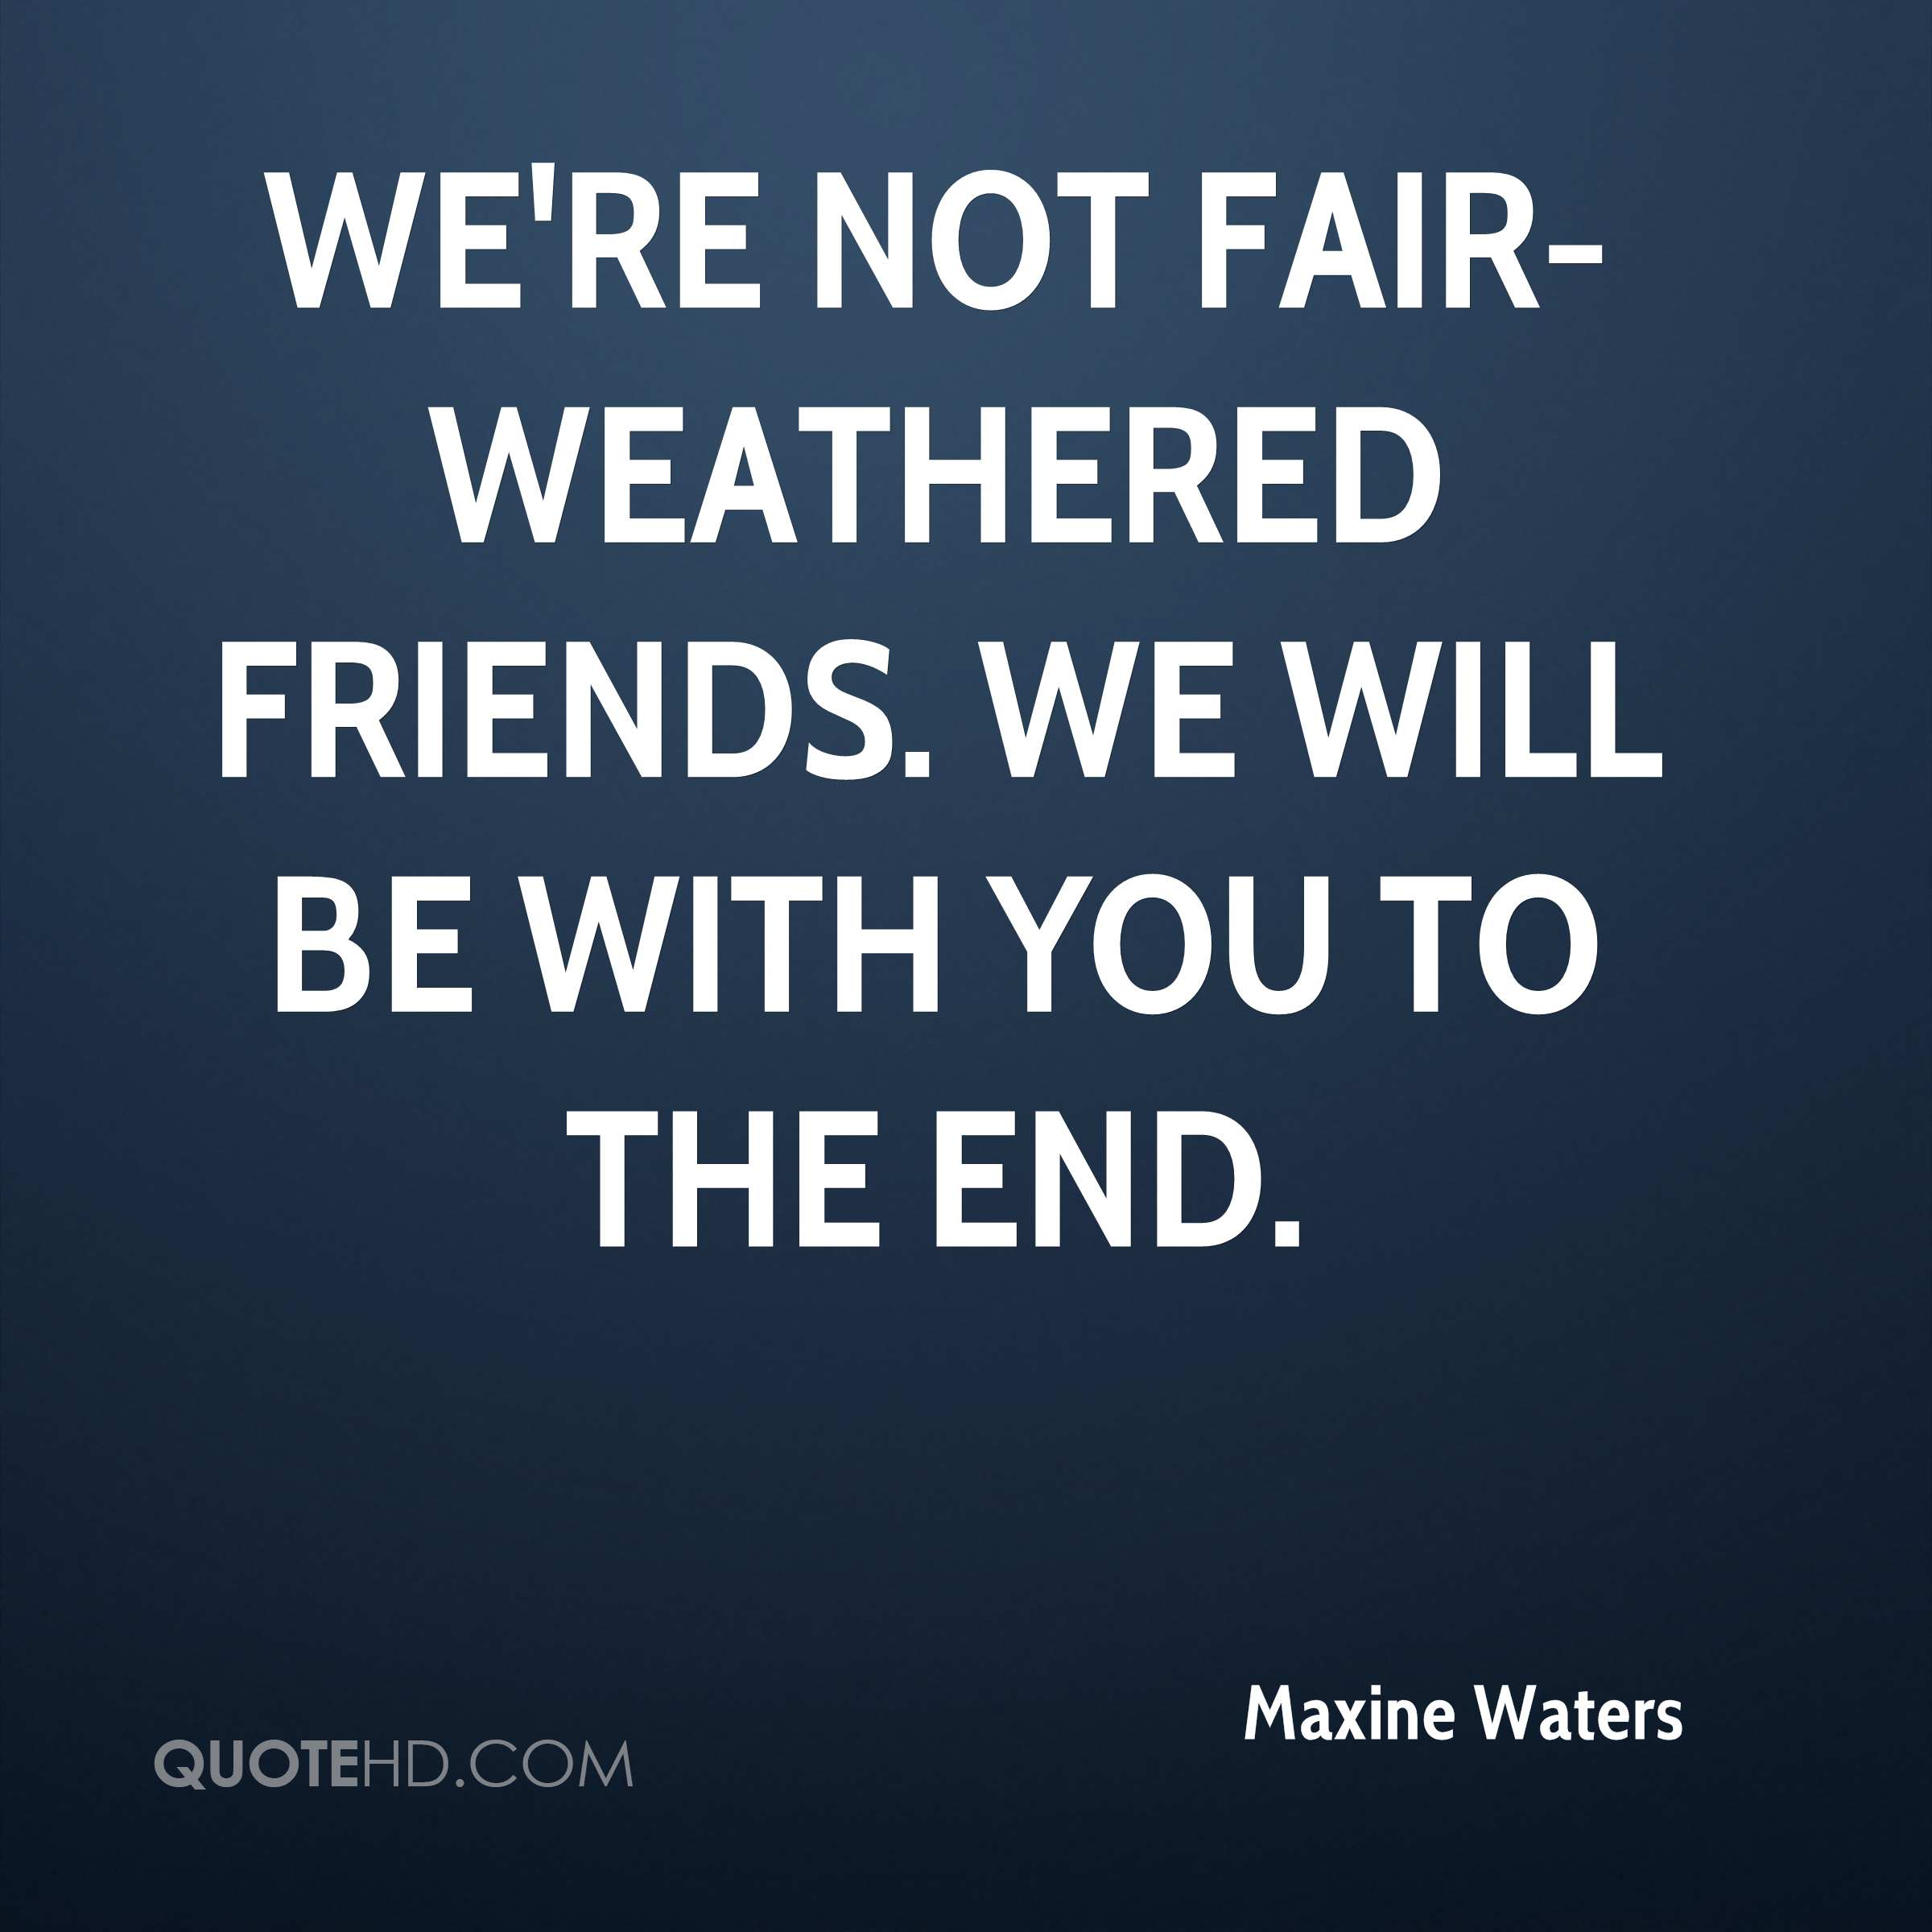 We're not fair-weathered friends. We will be with you to the end.